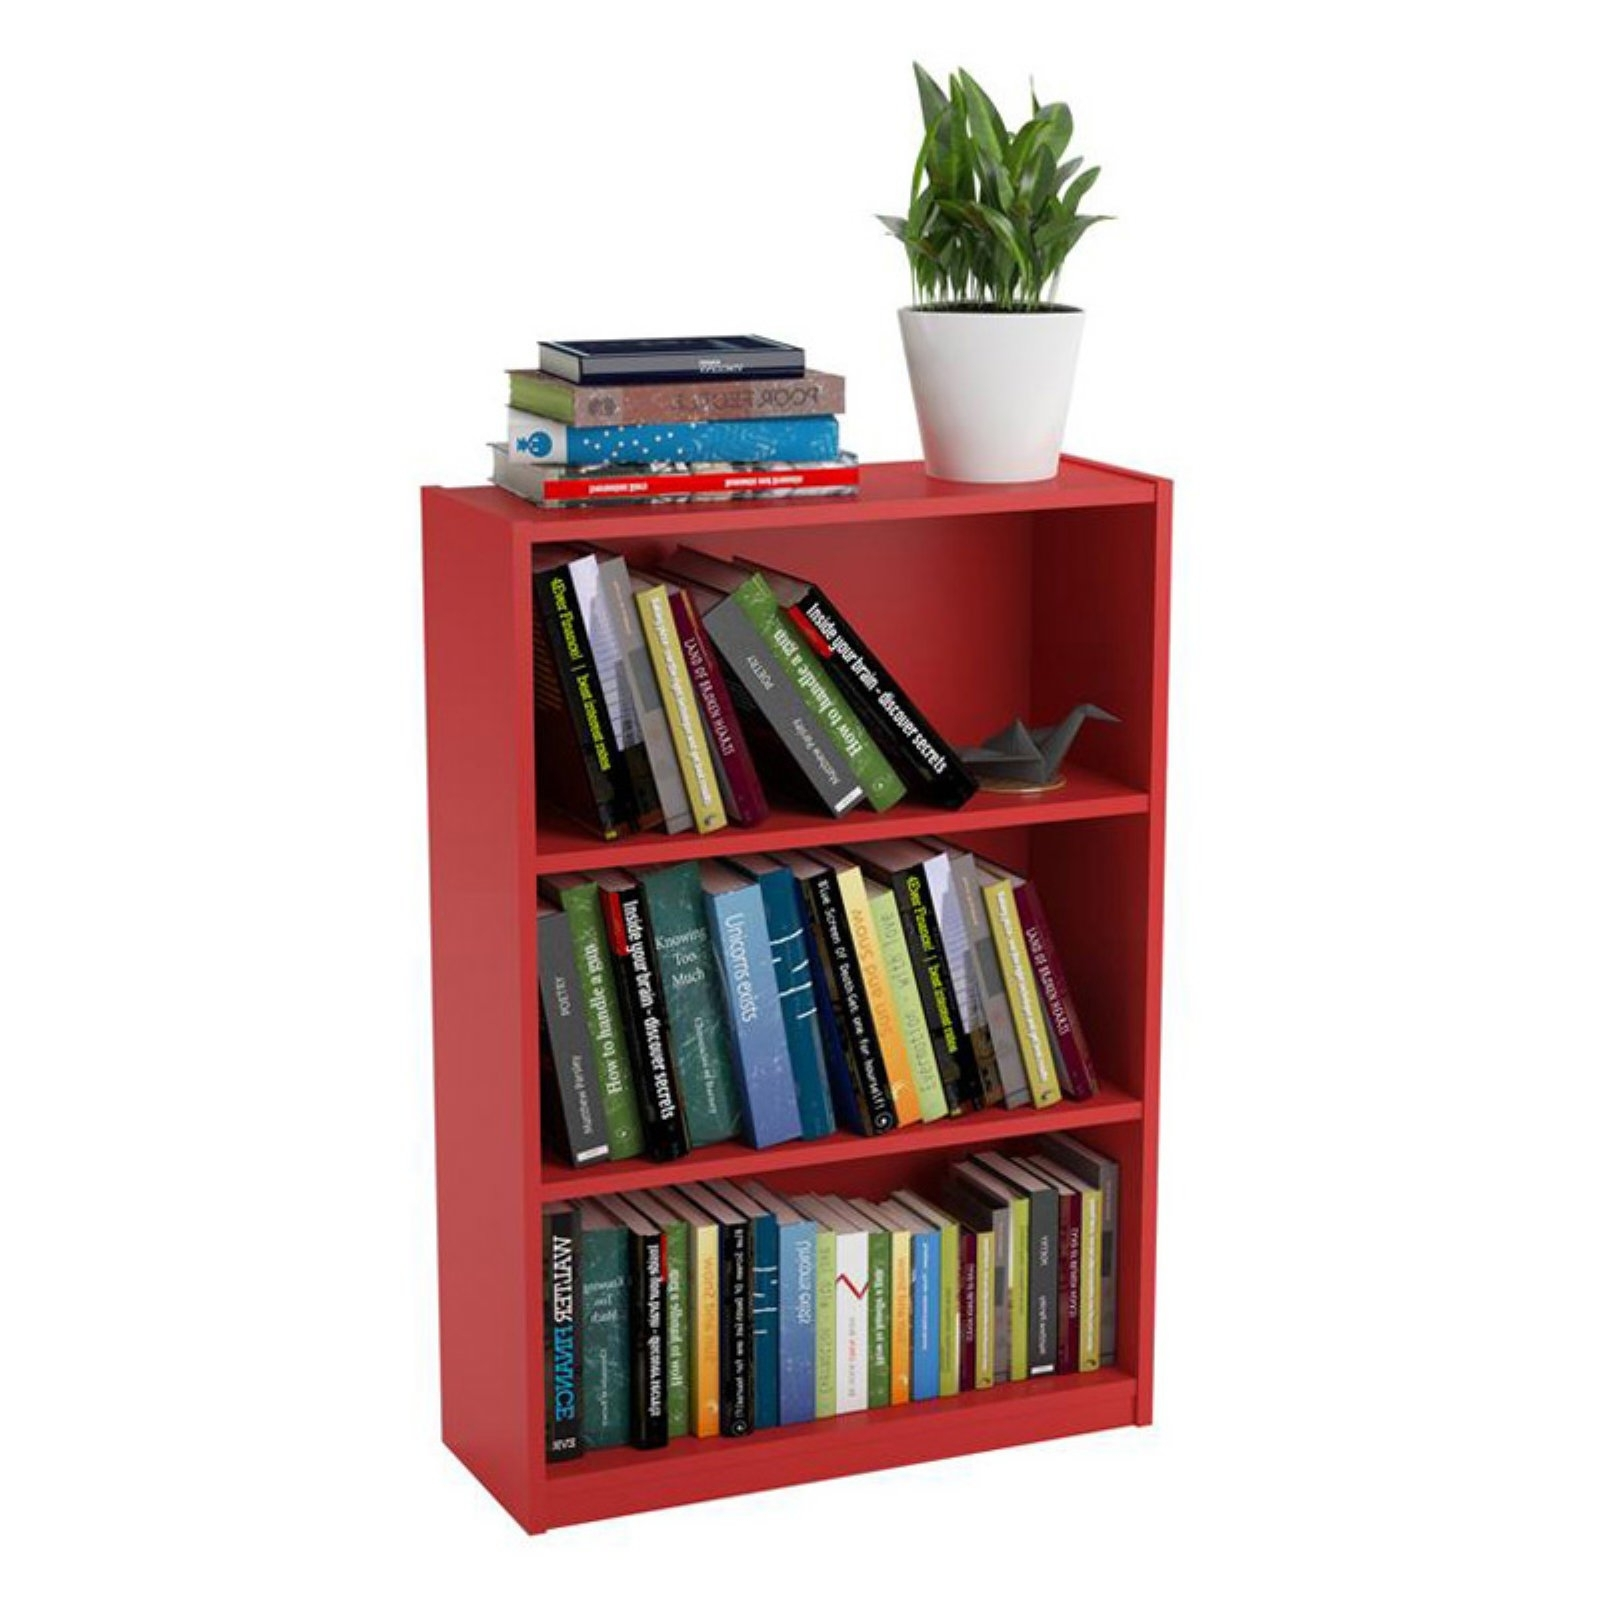 Ameriwood 3 Shelf Bookcase, Multiple Finishes – Walmart With Regard To Most Current Ameriwood 3 Shelf Bookcases (View 5 of 15)